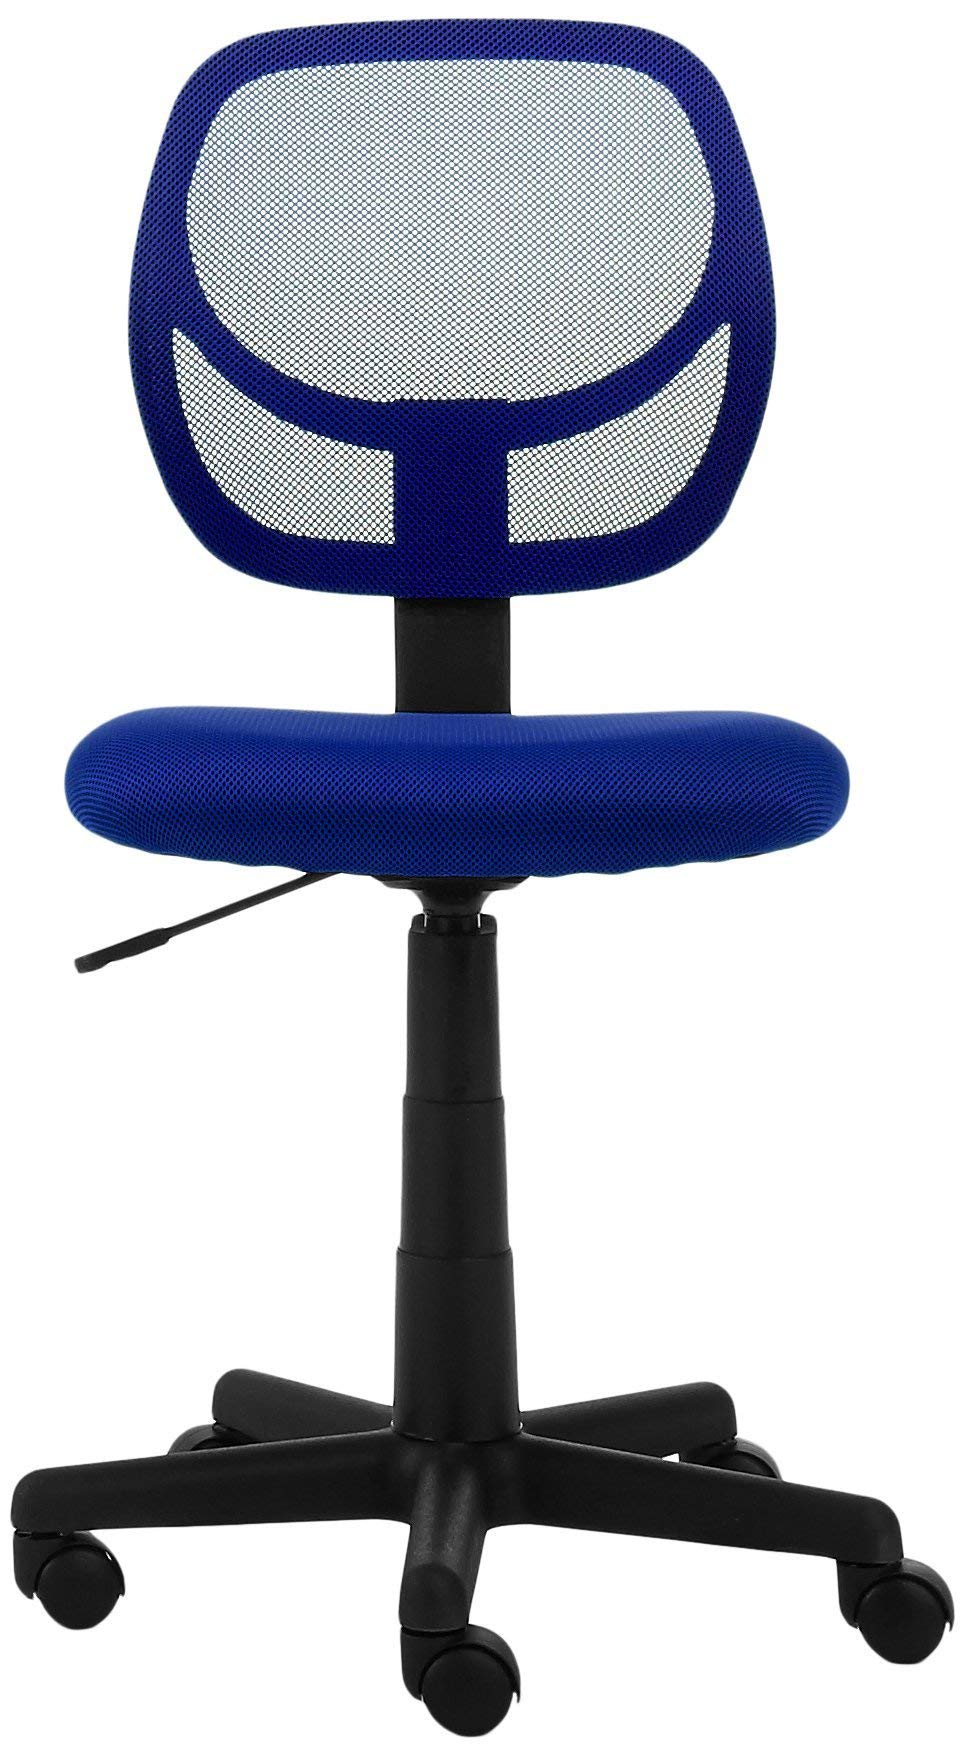 AmazonBasics Low-Back Computer Task Office Desk Chair with Swivel Casters - Blue by AmazonBasics (Image #3)